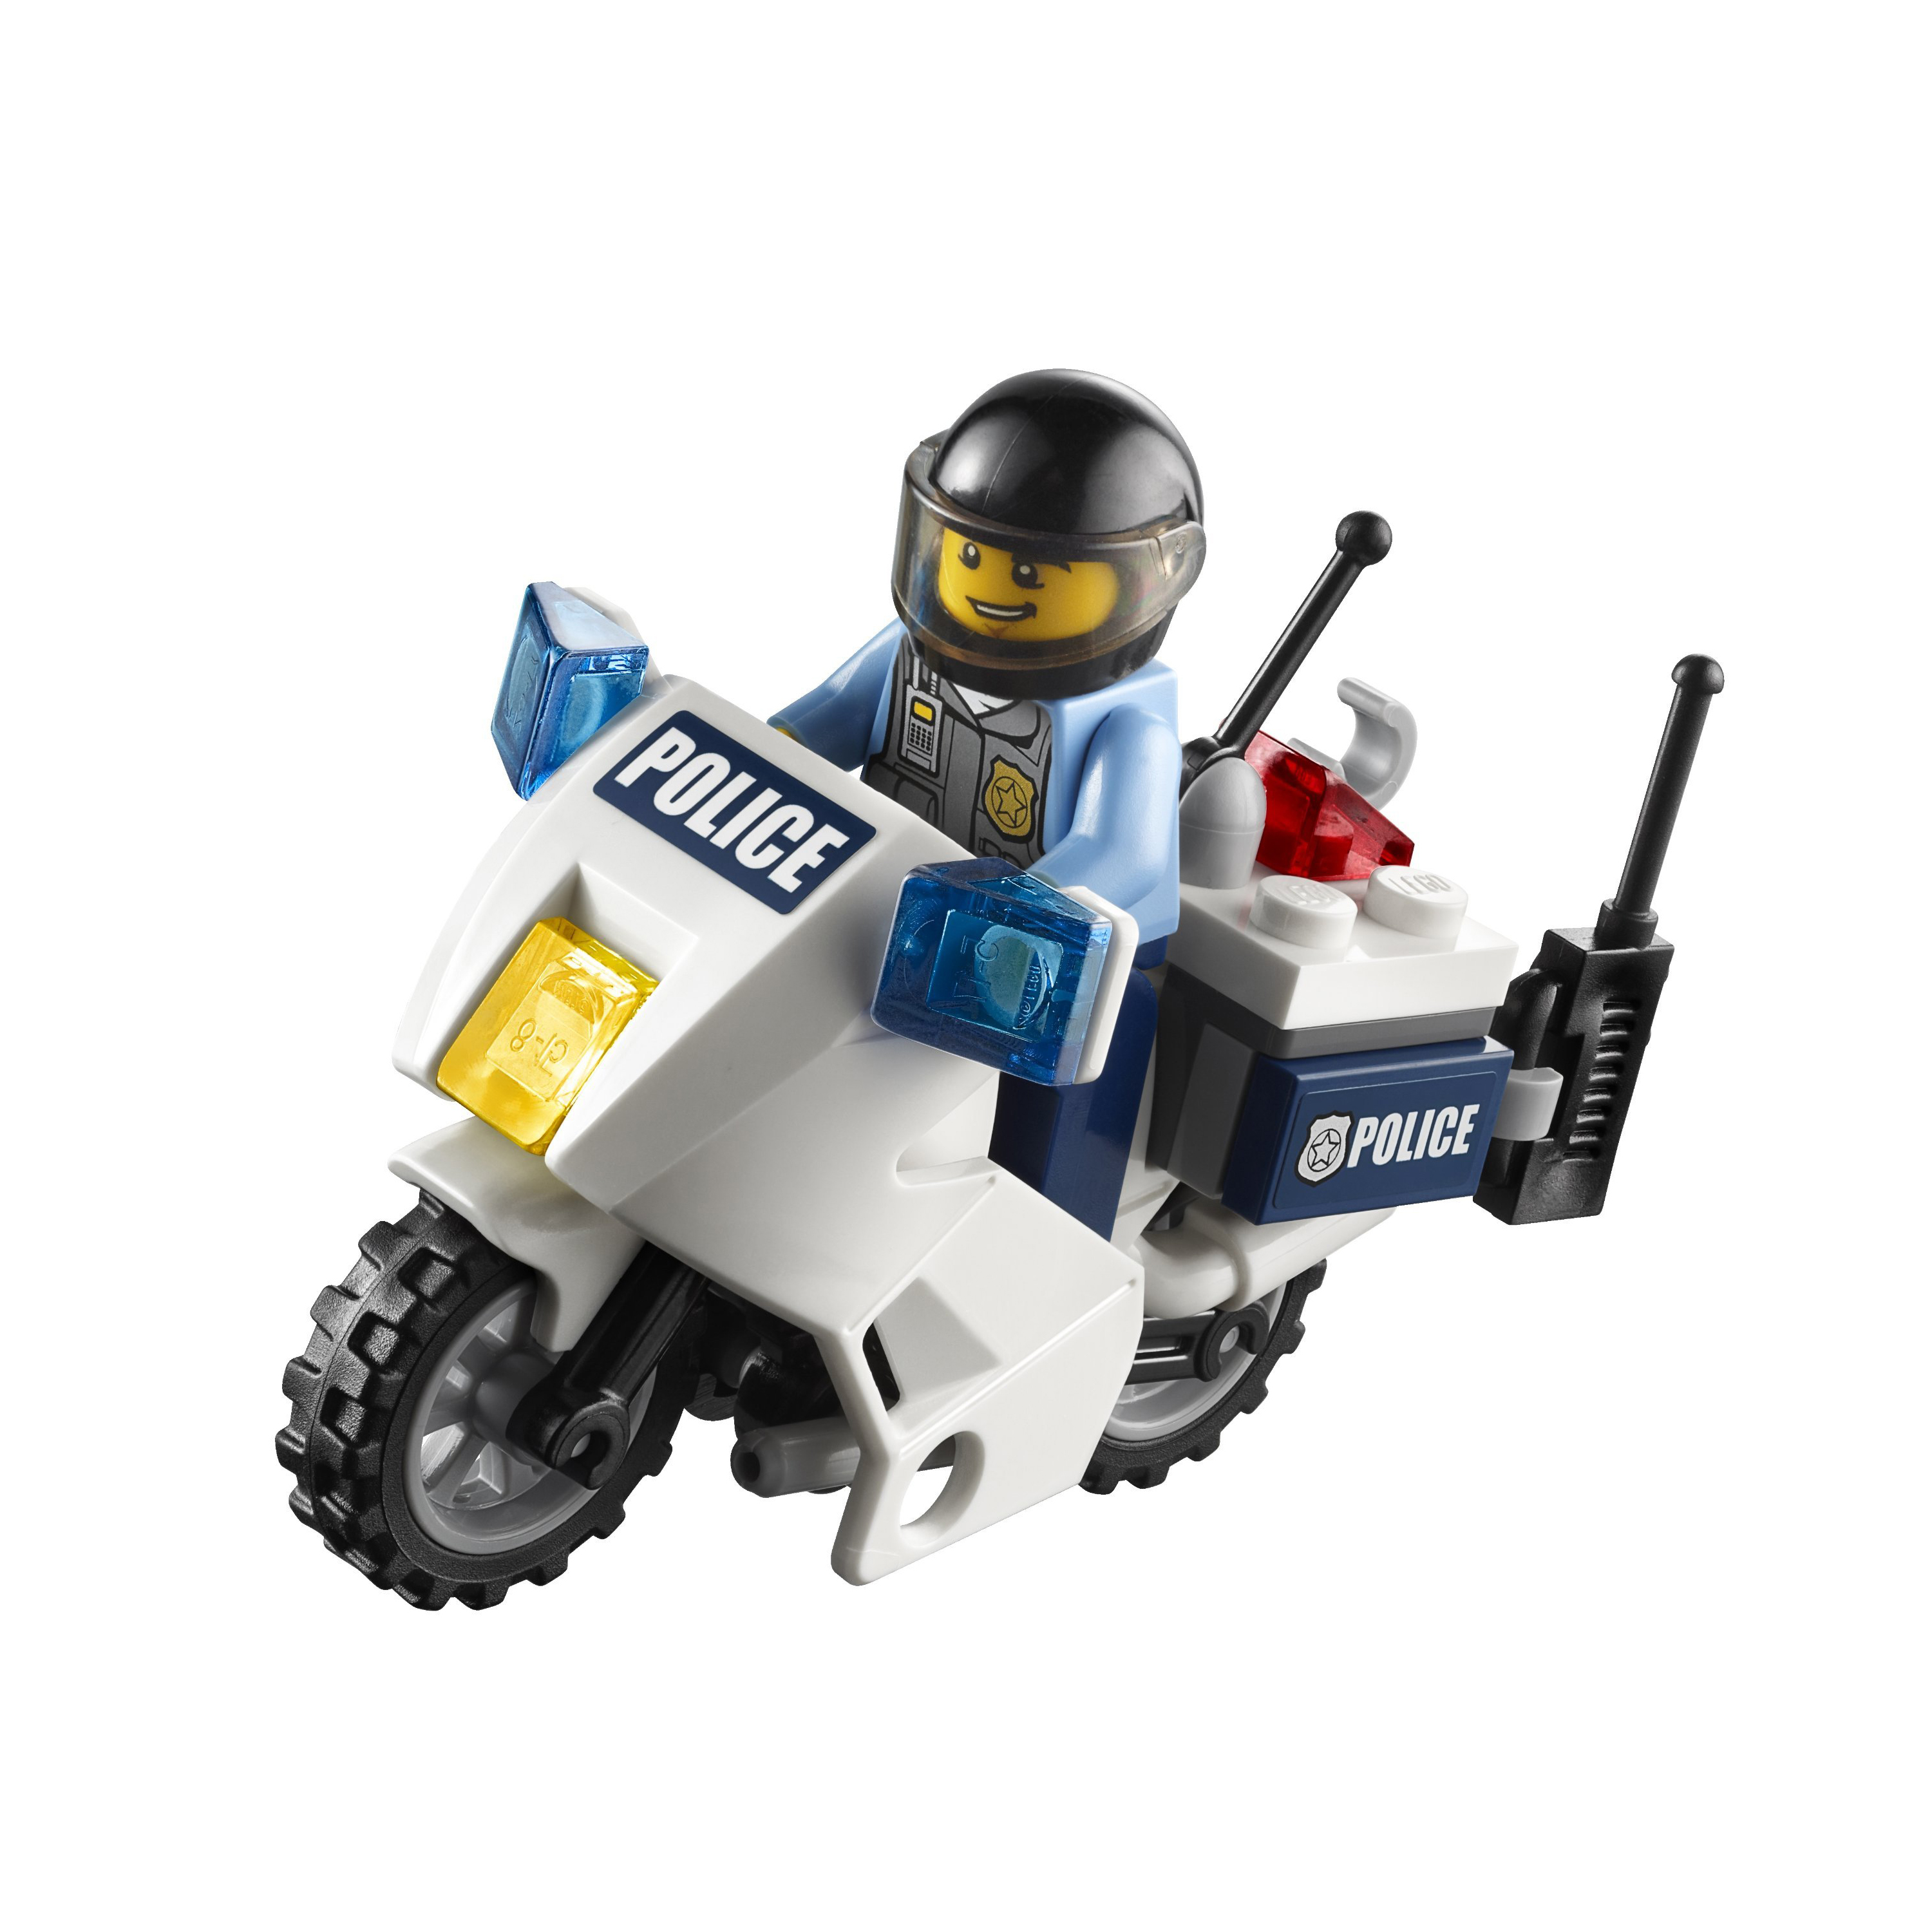 Details about LEGO CITY 60007 High Speed Chase Police Motorcycle Chase ...